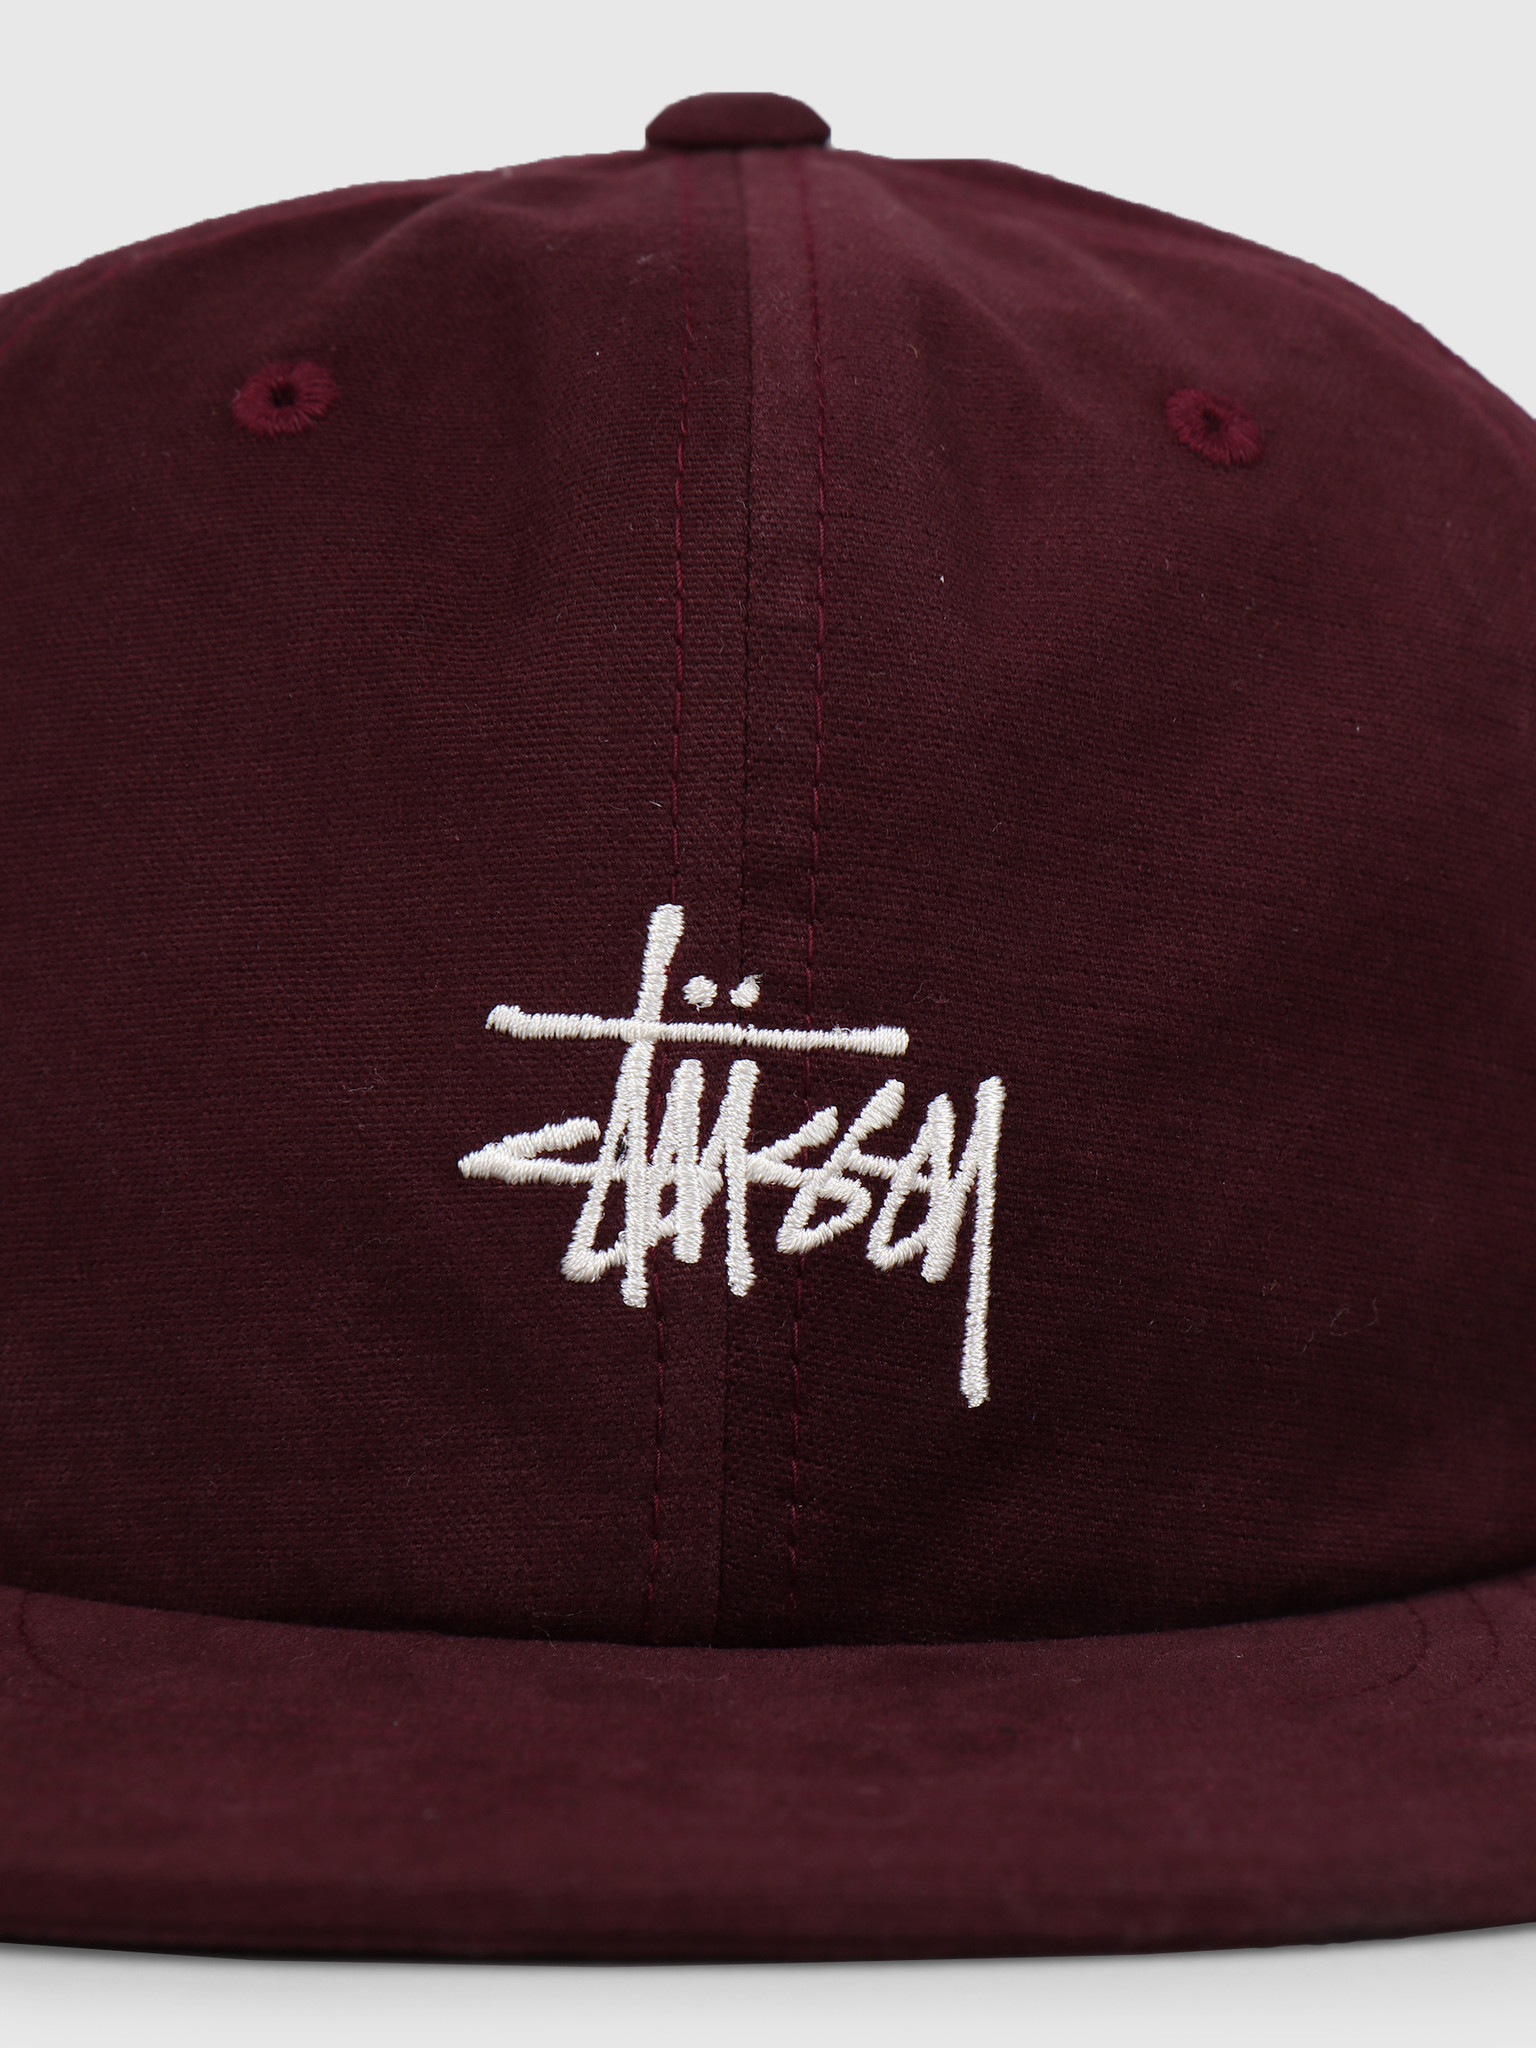 Stussy Stussy Washed Oxford Strapback Cap Burgundy 0615